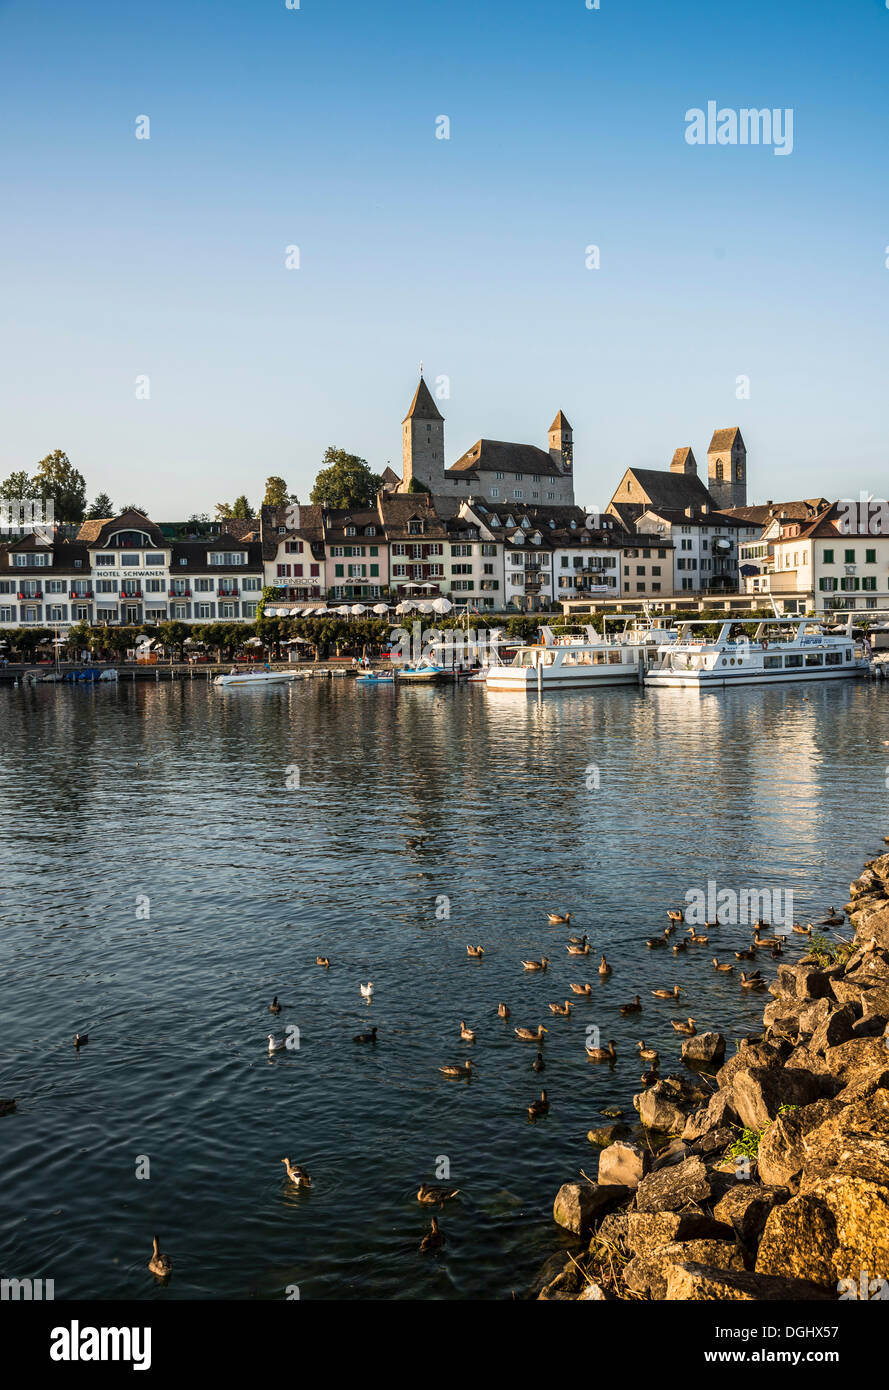 Harbour promenade, harbour, Rapperswil, Rapperswil-Jona, Canton of St. Gallen, Switzerland - Stock Image